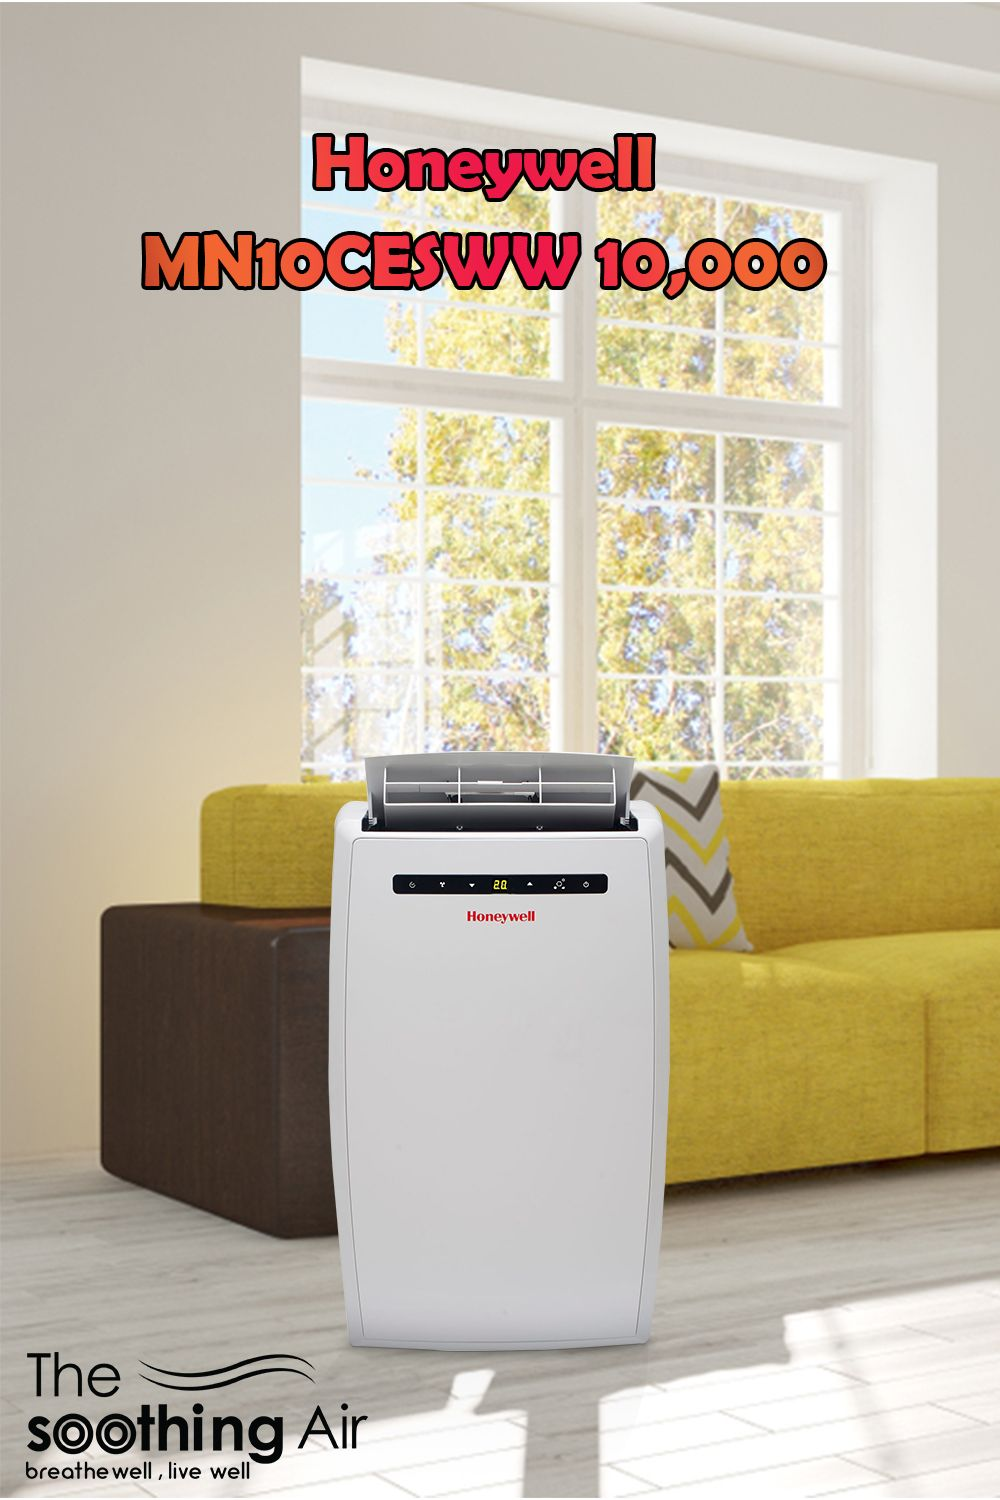 Top 10 Portable Air Conditioners (Dec. 2019) Reviews